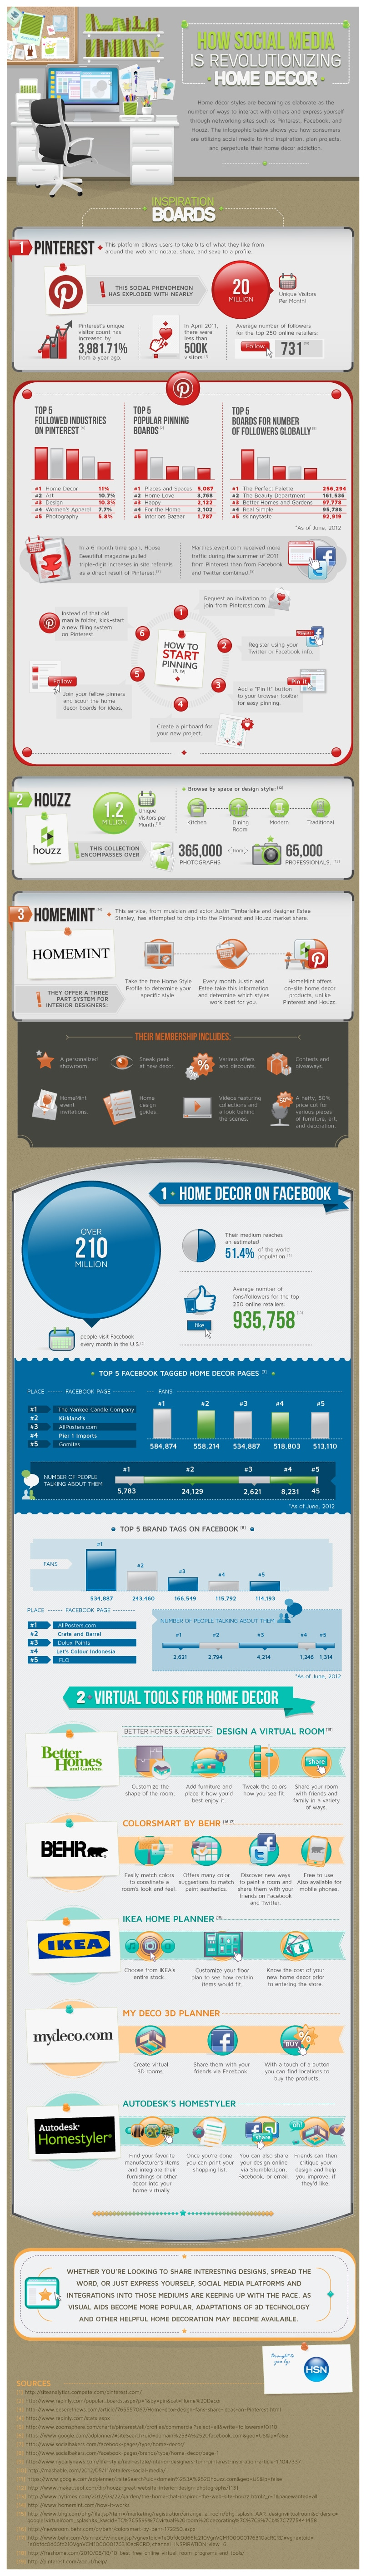 Social-Media-Home-Decor-Infographic